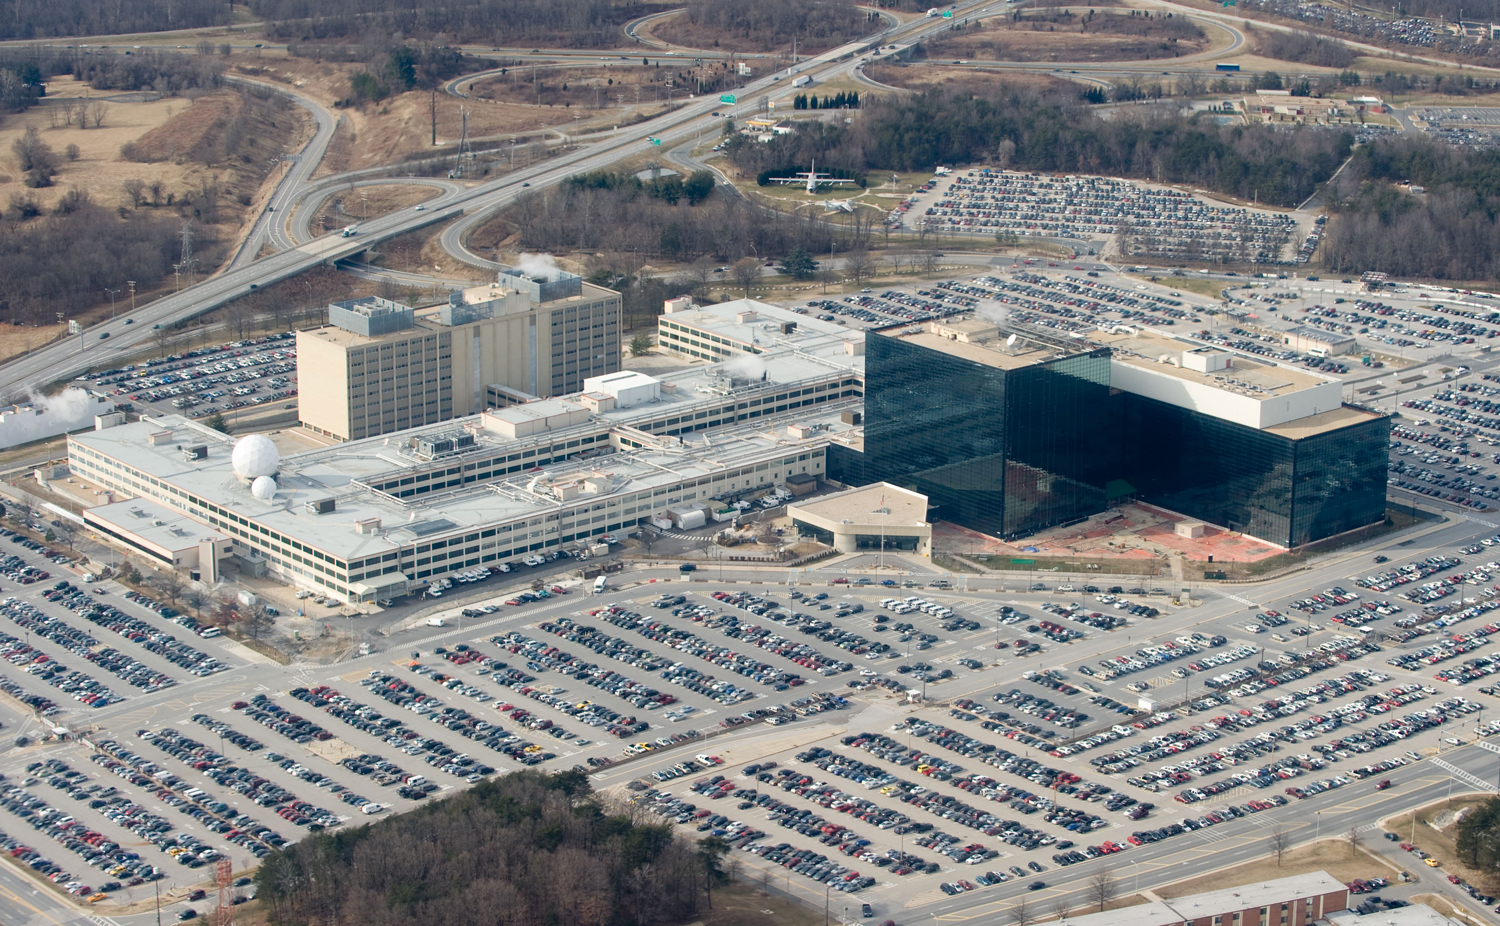 NSA headquarters, where software vulnerabilities go to be hoarded in secret ... and then stolen, leaked, and unleashed on an unsuspecting public.